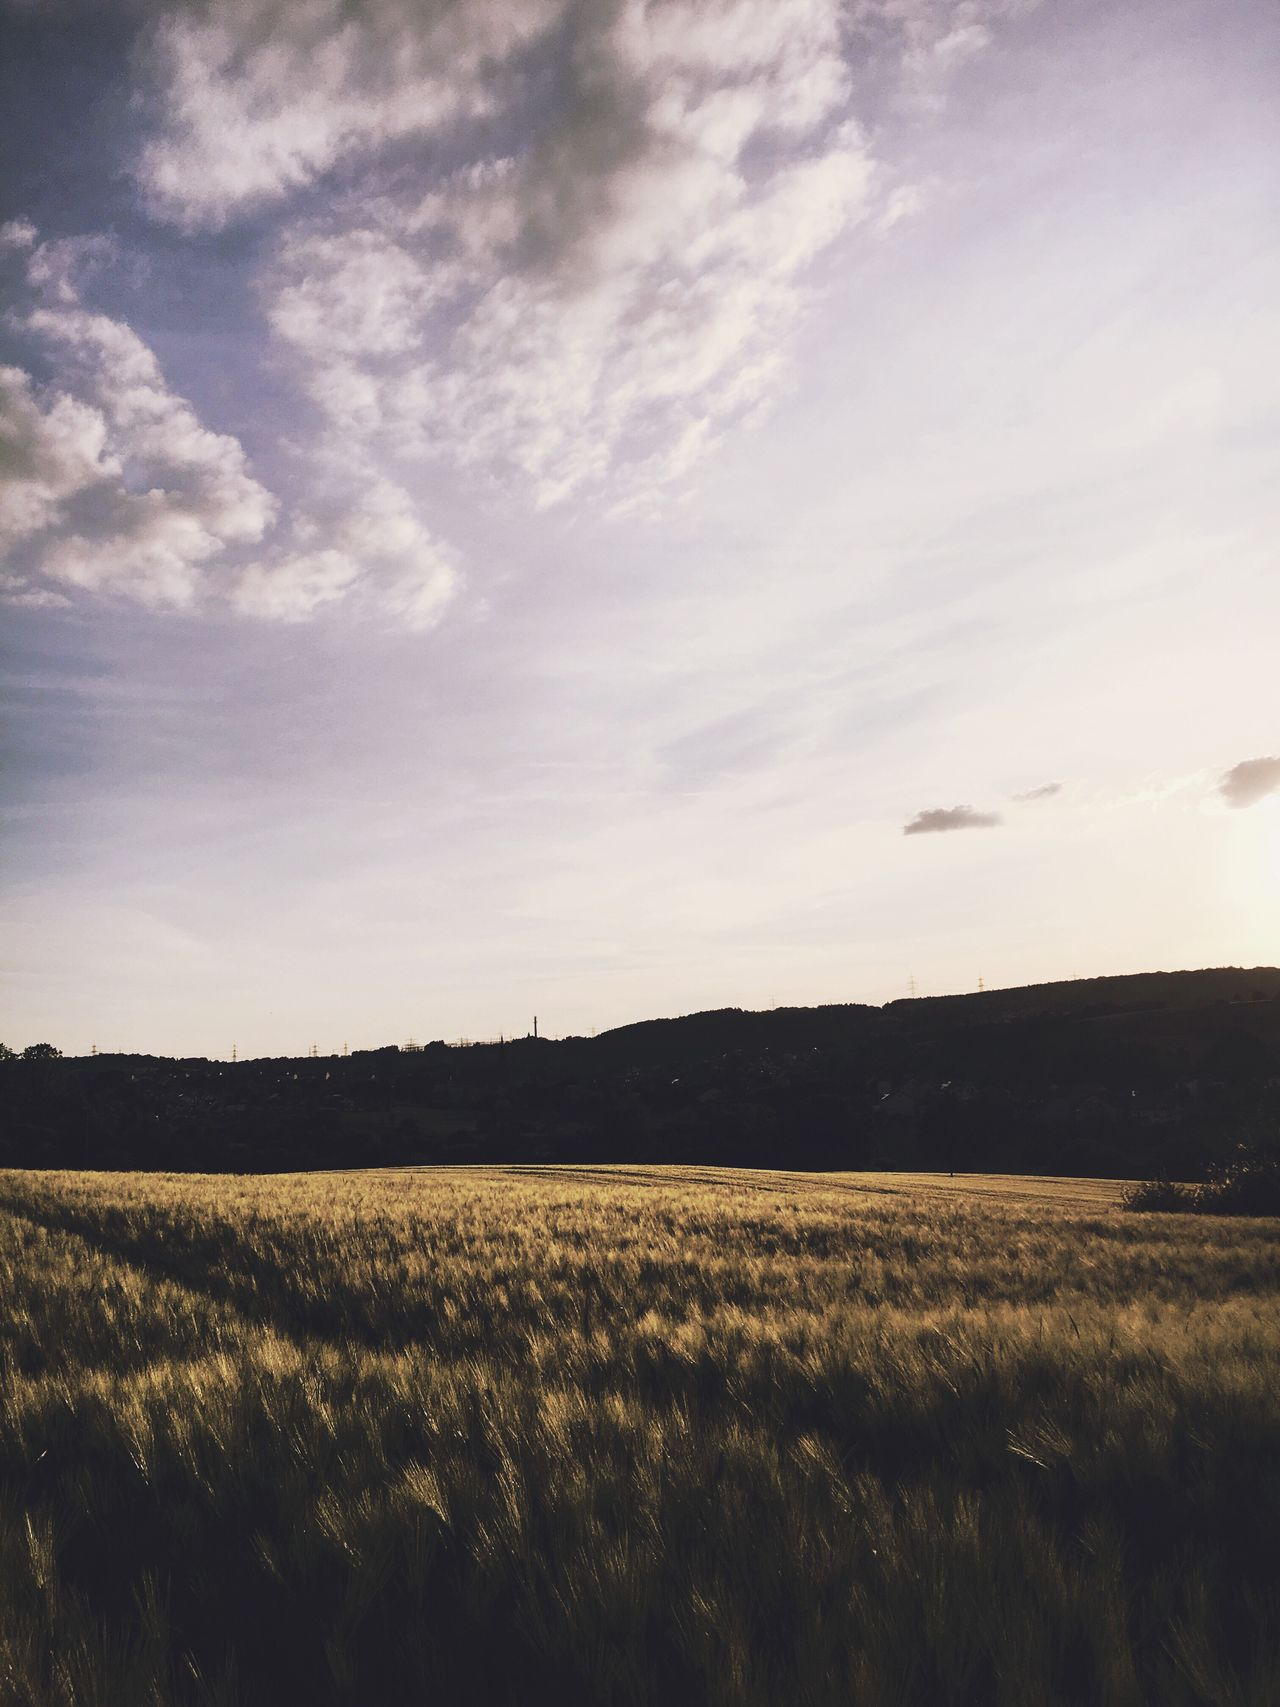 Field Landscape Agriculture Nature Sky Tranquil Scene Rural Scene Scenics No People Beauty In Nature Tranquility Growth Outdoors Grass Day Sunset Sunset_collection Cereal Plant